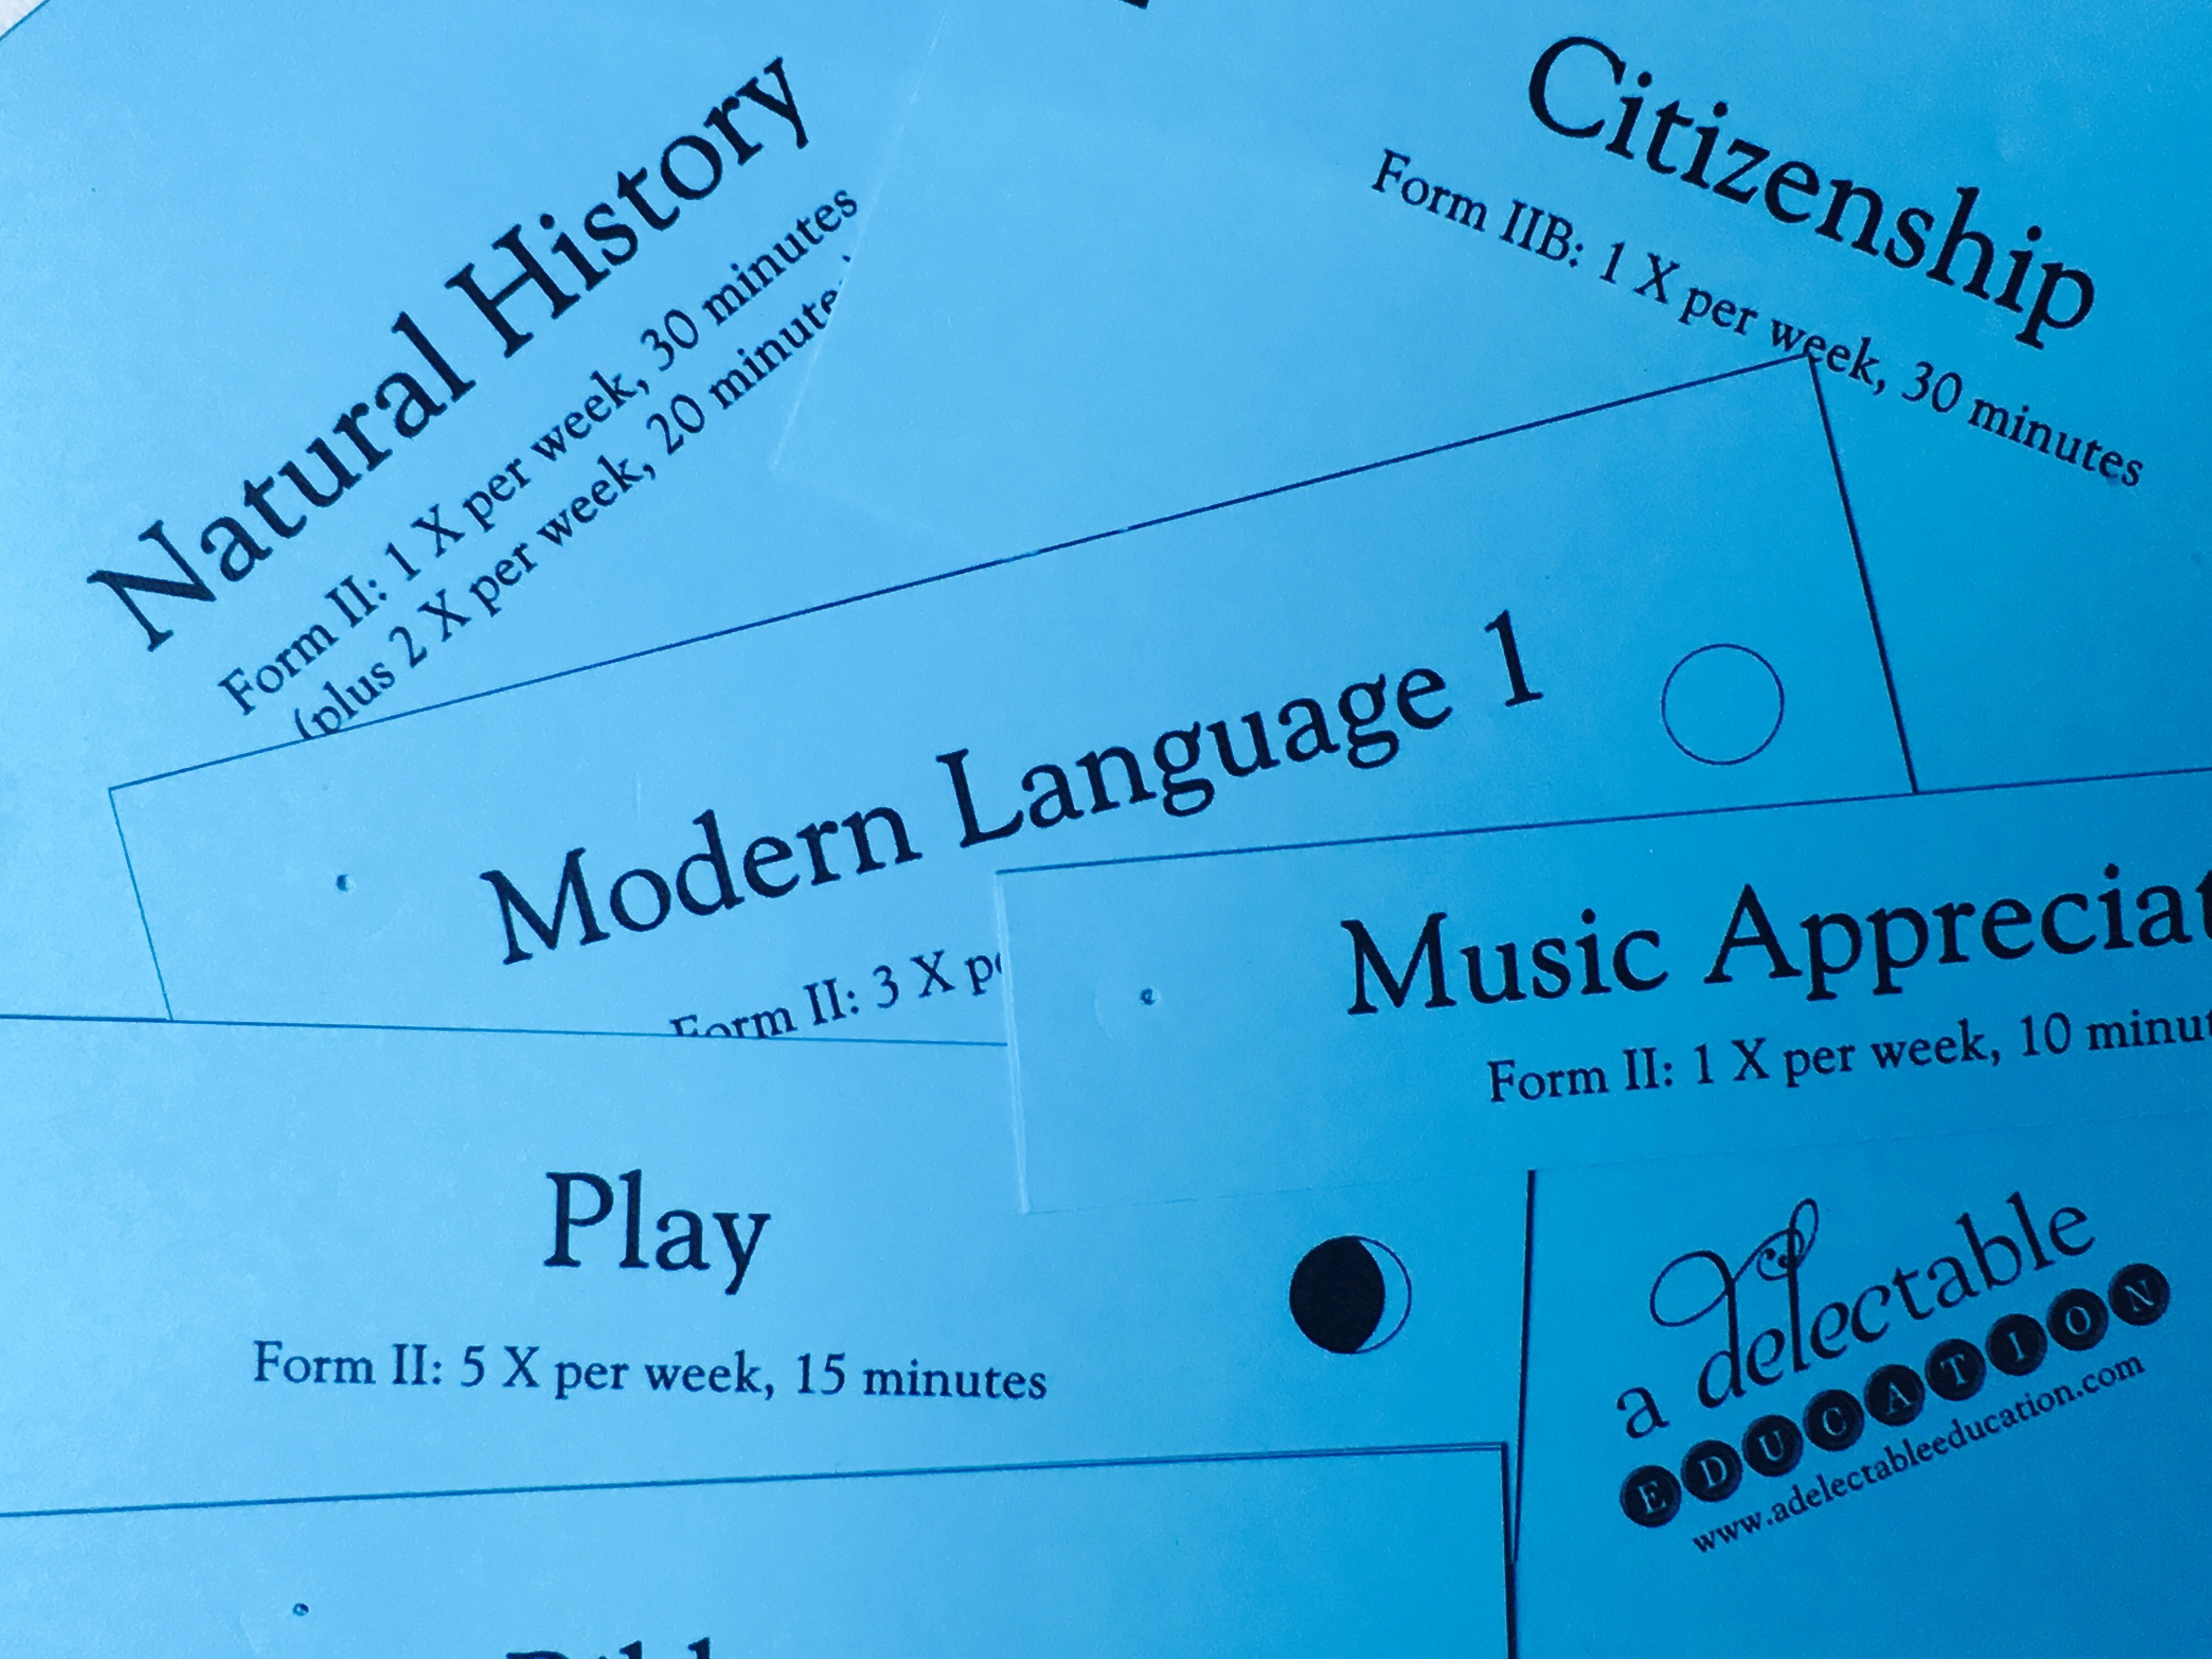 Form  Schedule Cards  A Delectable Education Podcast  Ao